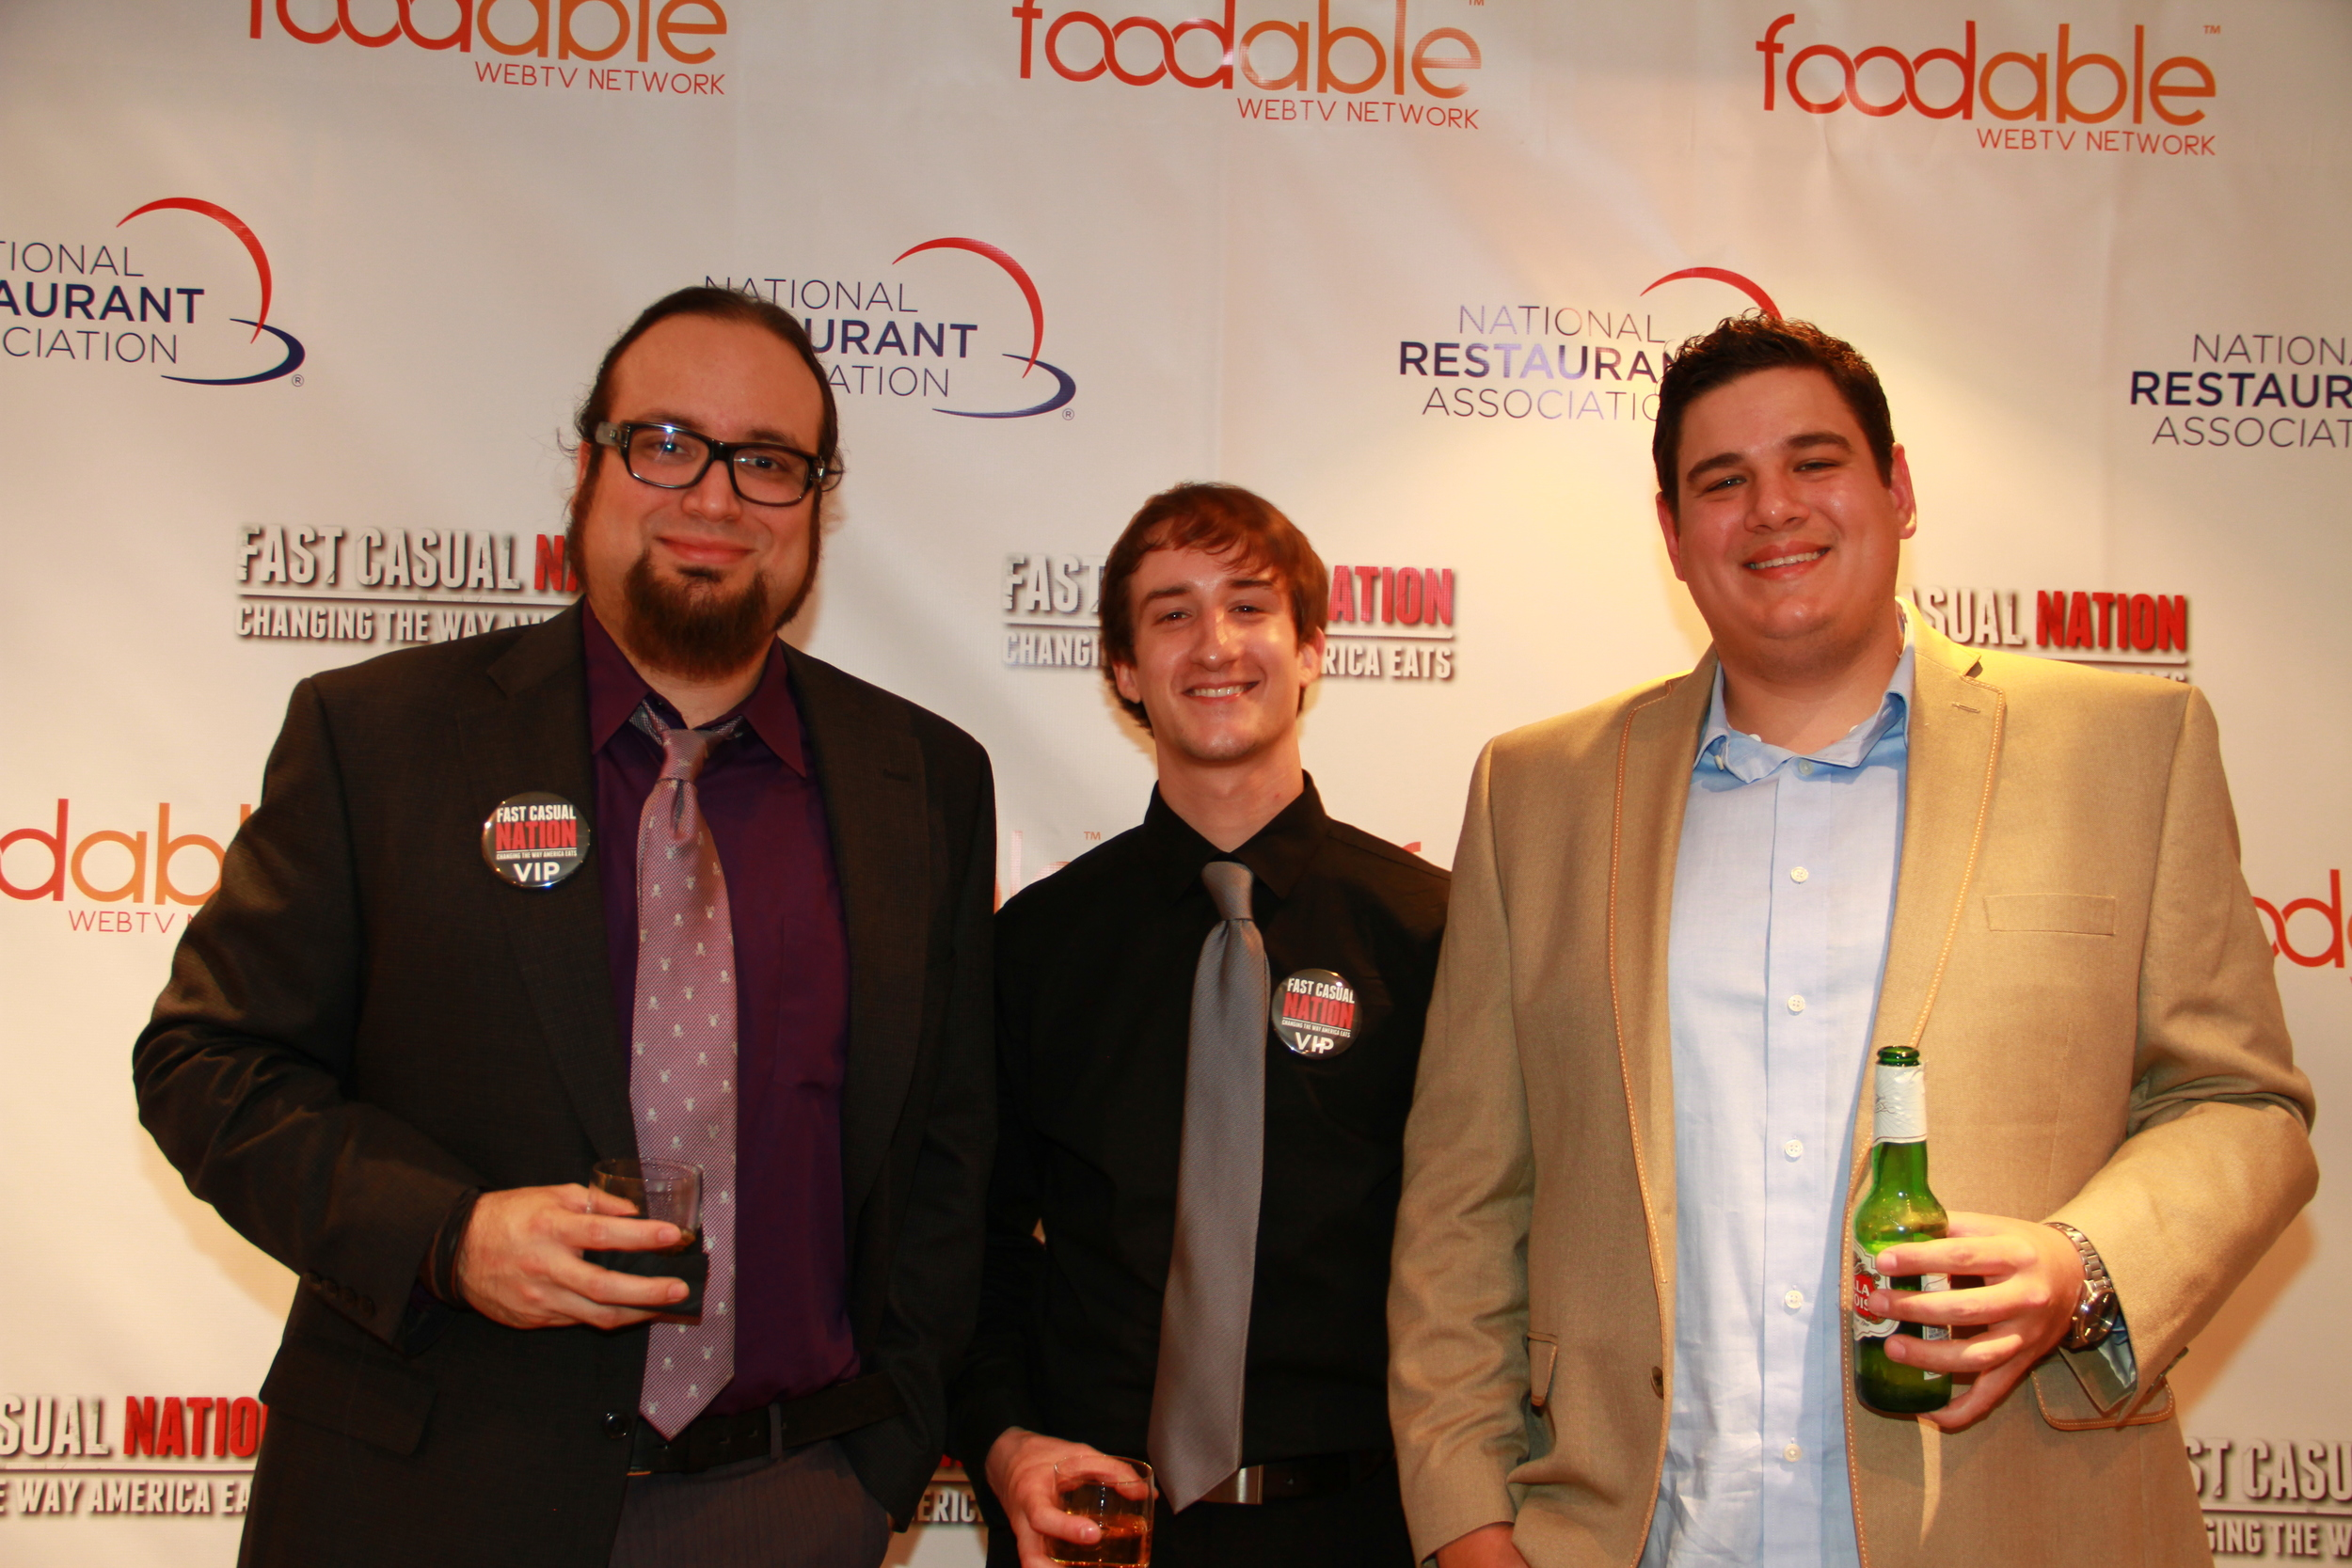 Foodable Video Editor Carlos J. Ruiz, Sound Engineer Steve Zimmerman & Director of Photography Nathan Mikita